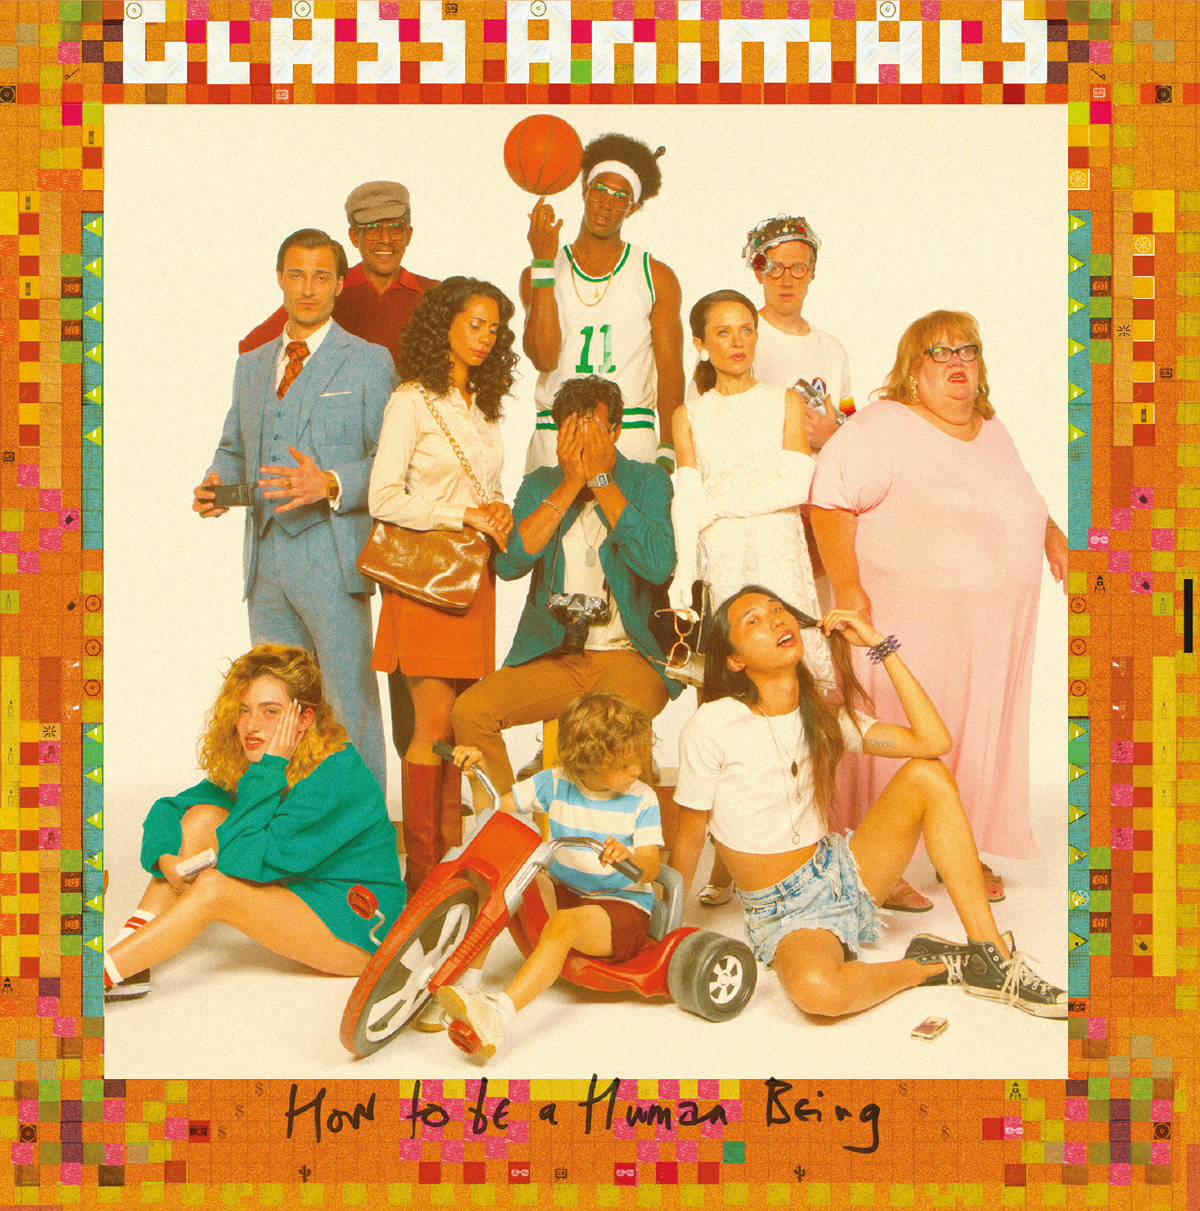 Glass Animals How To Be A Himan Being